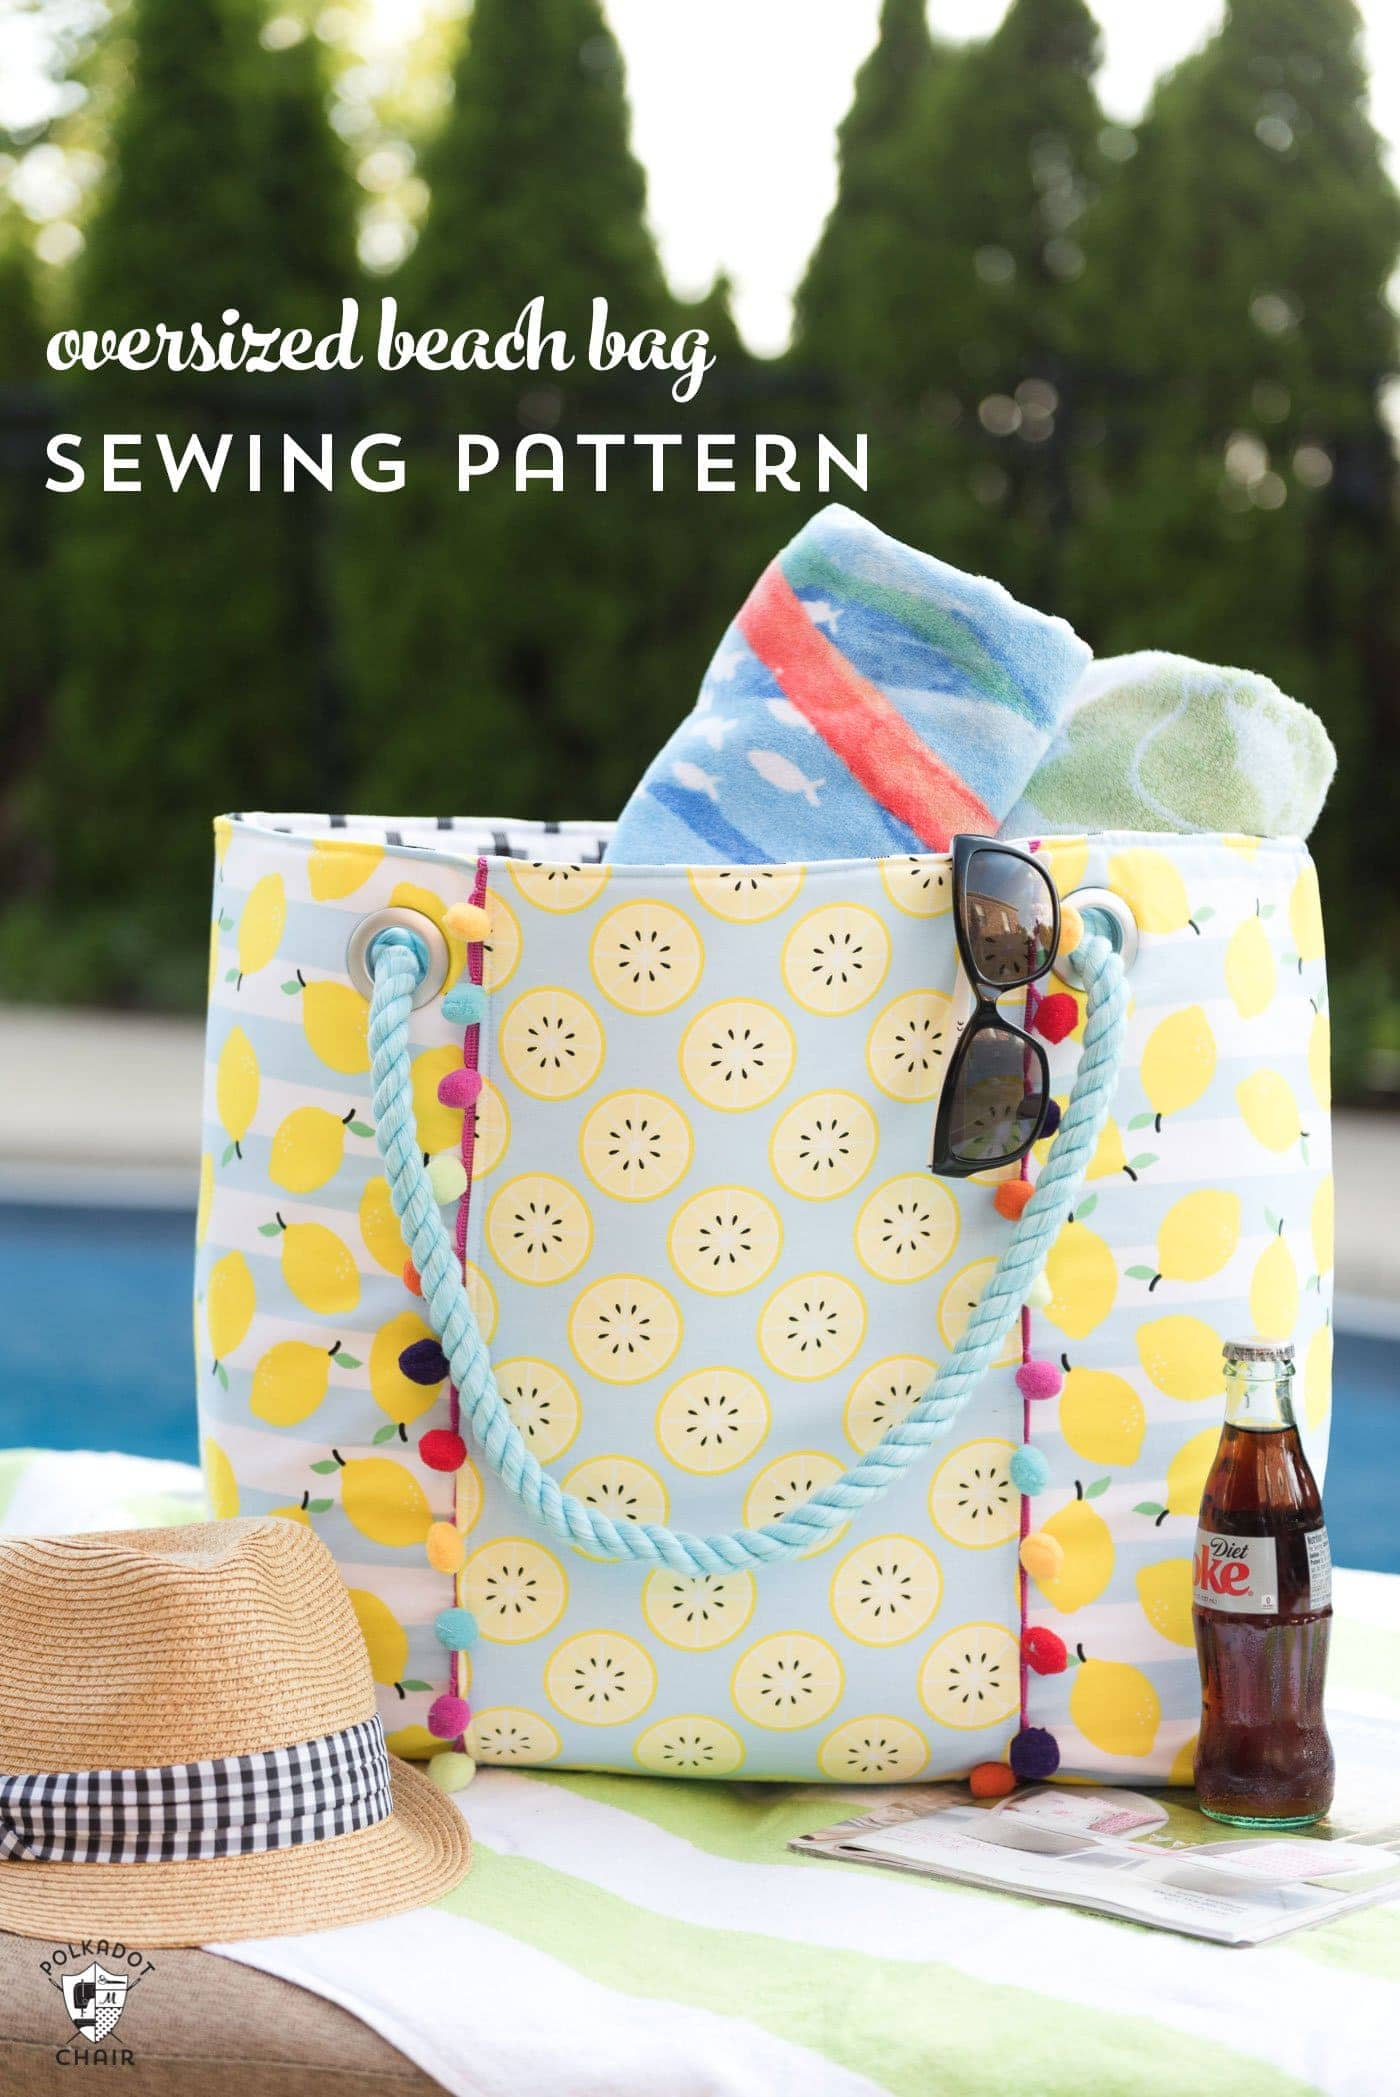 Oversized beach bag sewing pattern the polka dot chair jeuxipadfo Gallery